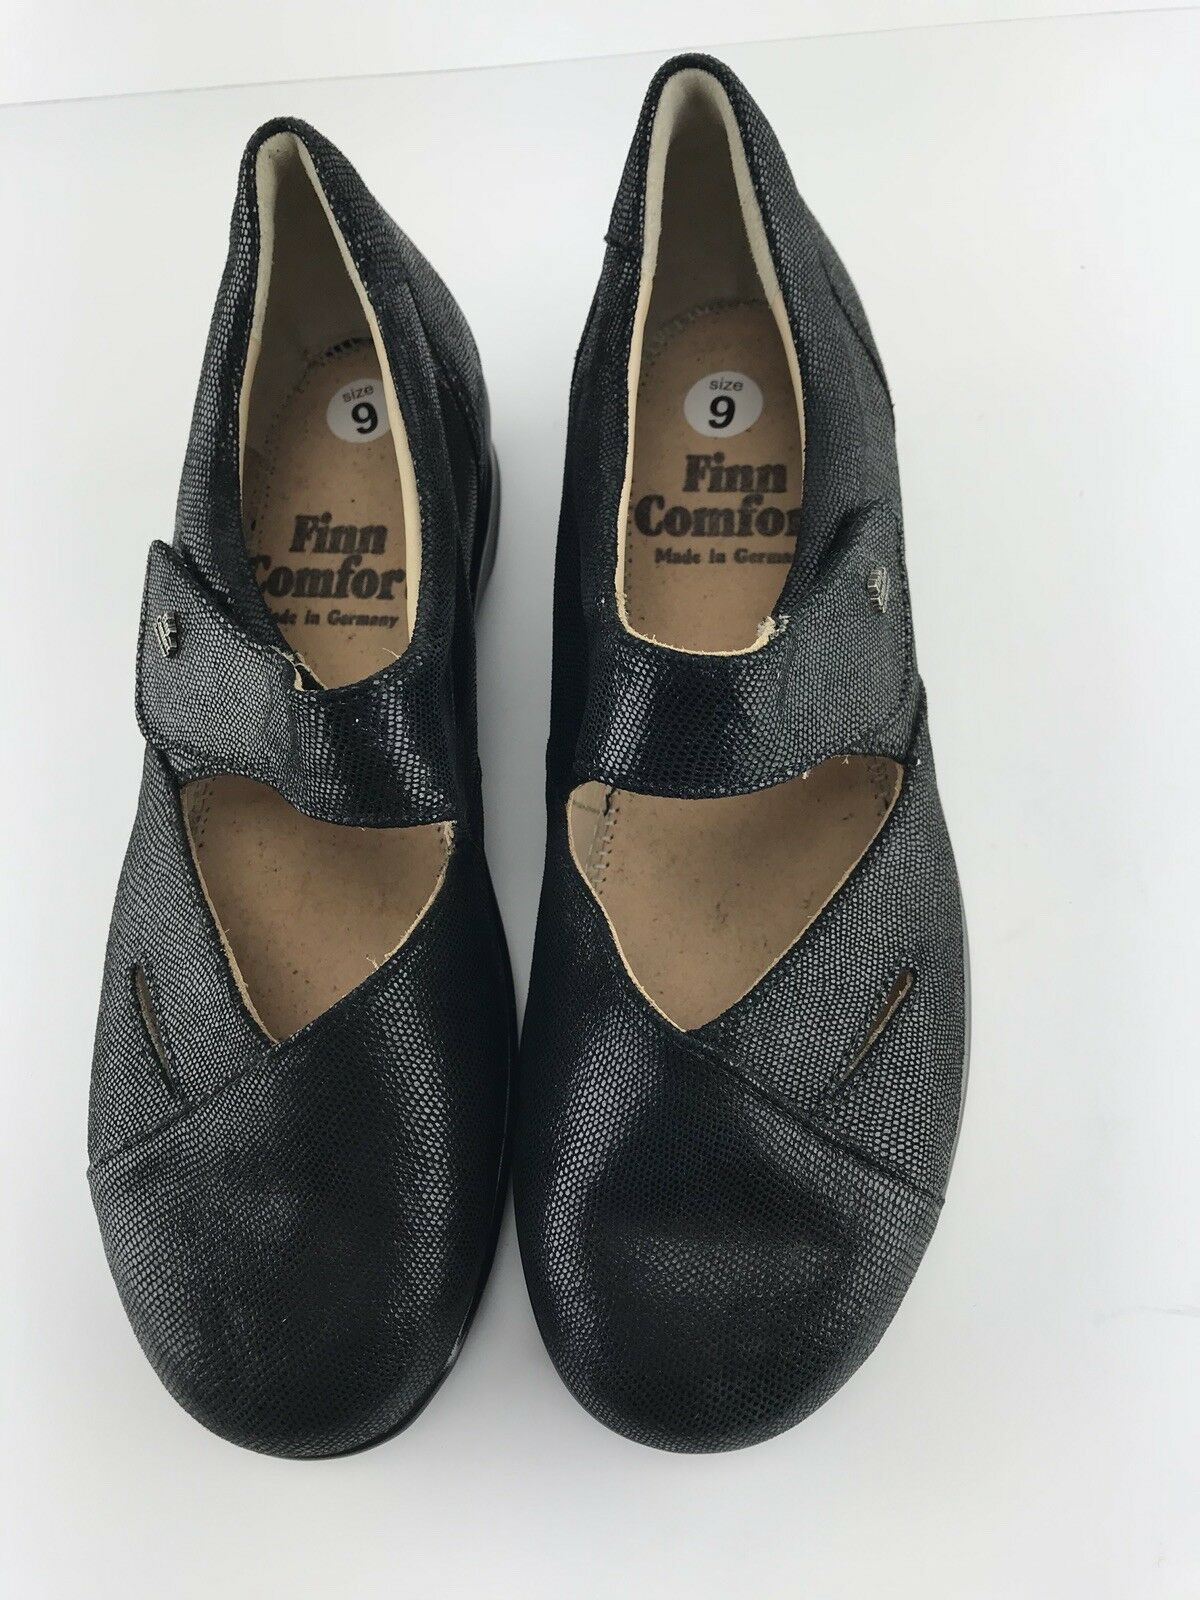 Womens Finn Comfort Black Leather Mary Janes Size 9